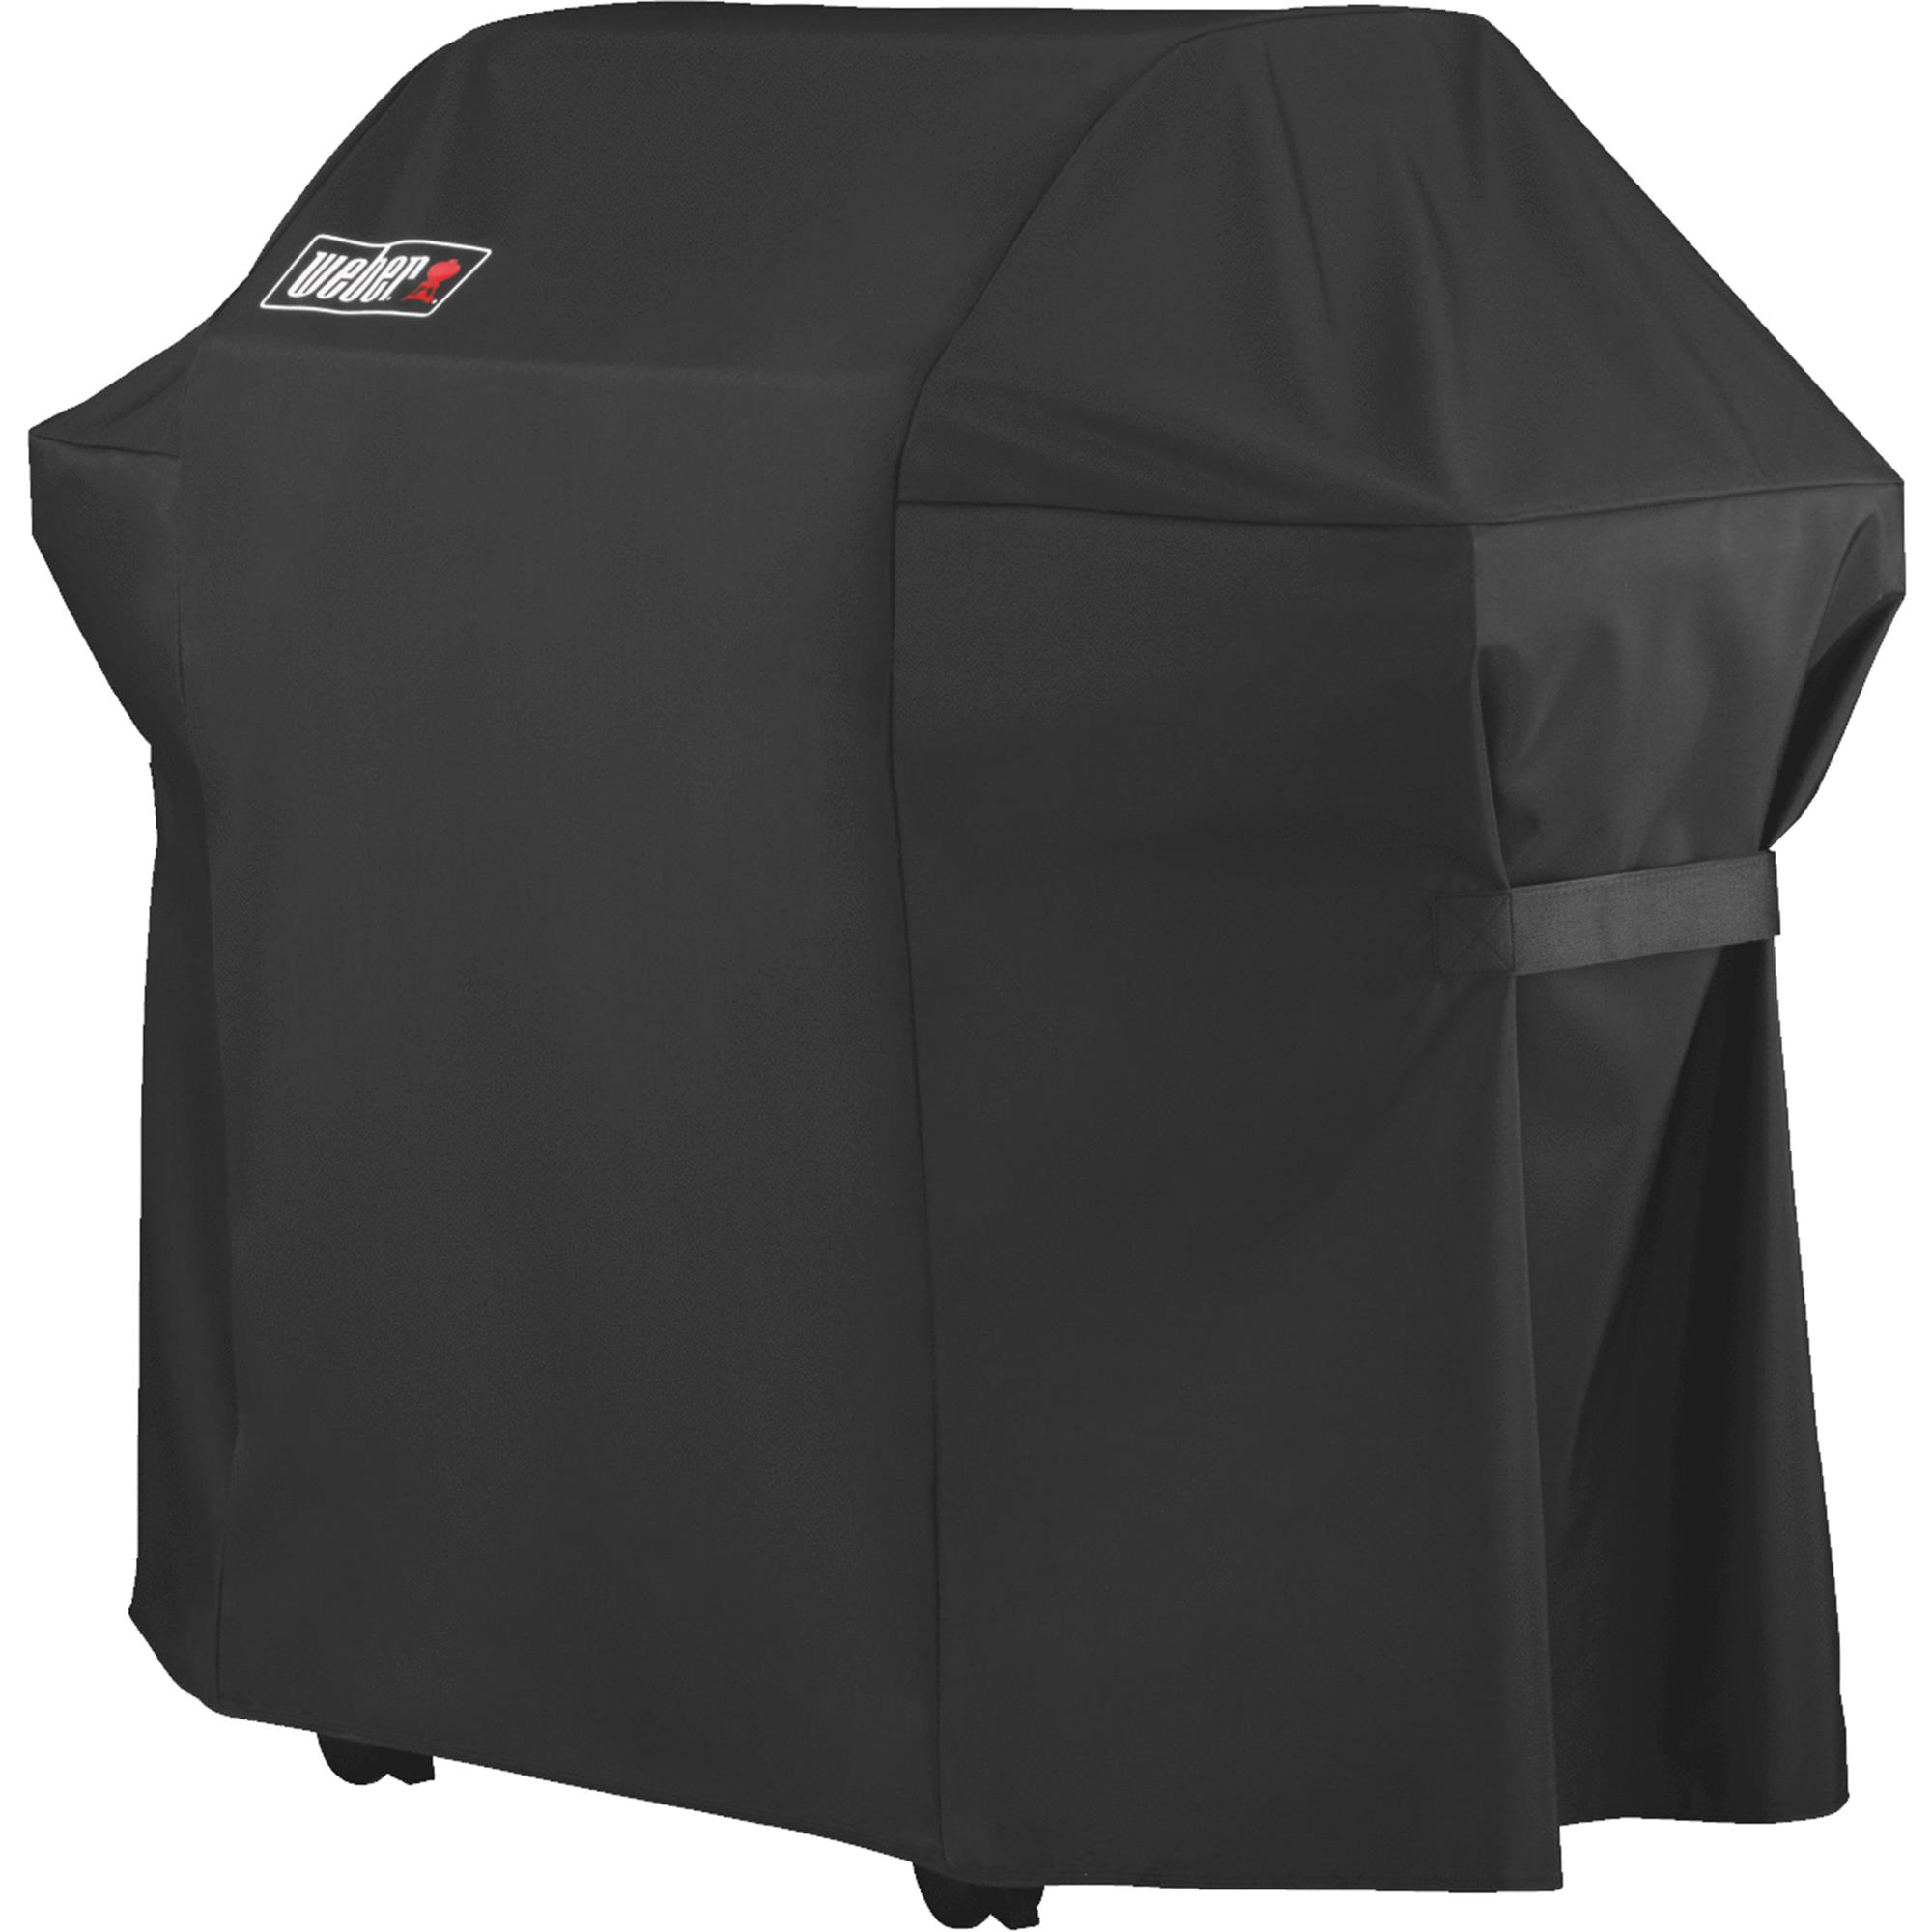 Weber Spirit 300S Premium 52 In. Grill Cover by Grill Covers